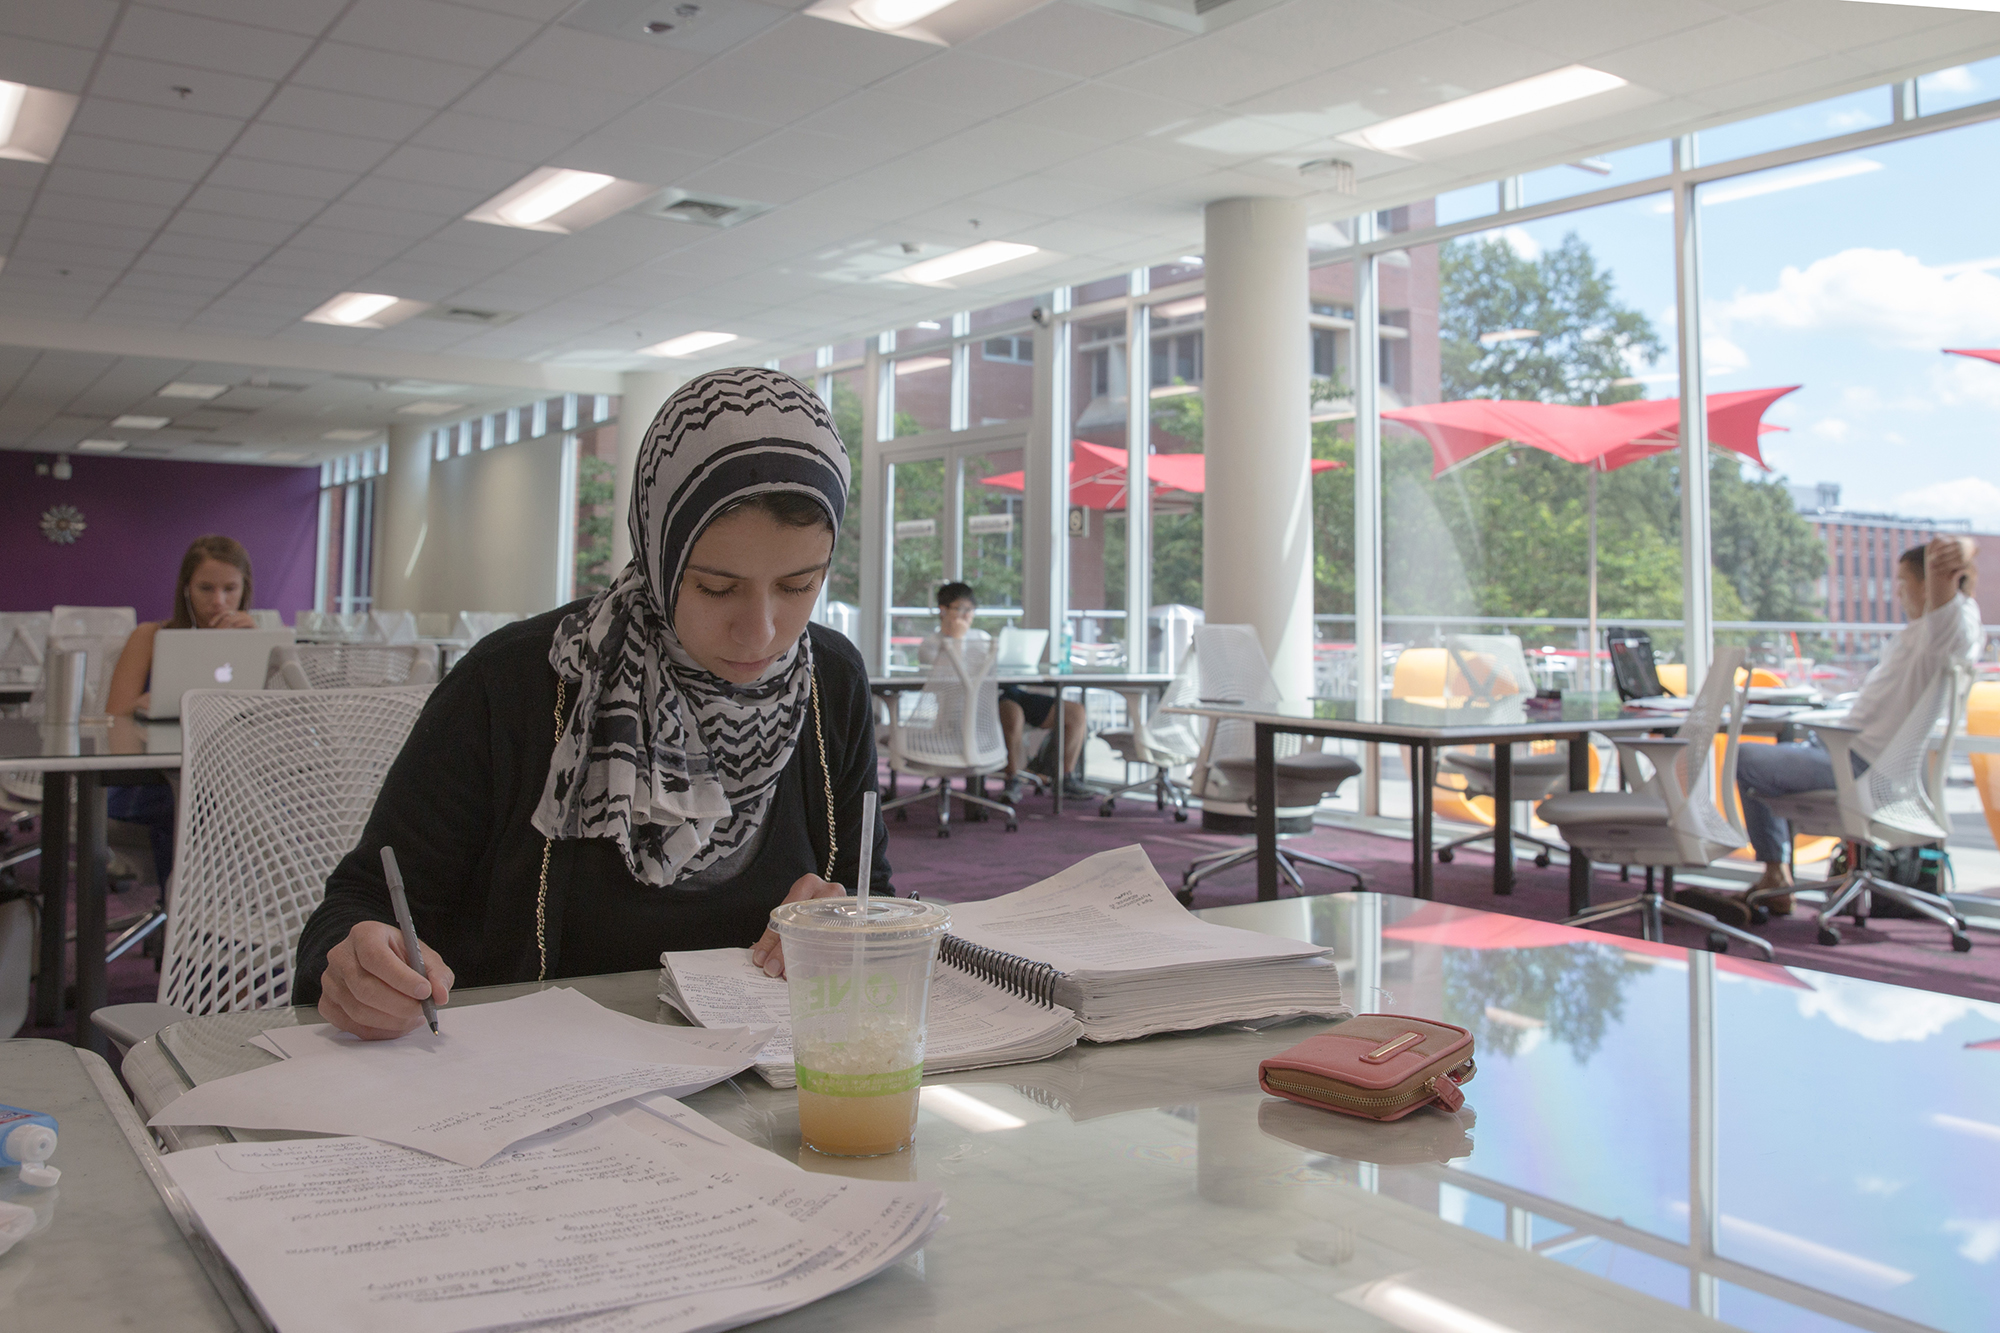 A student writes in a notebook at a glasstopped table in the silent reading room at DH Hill Library